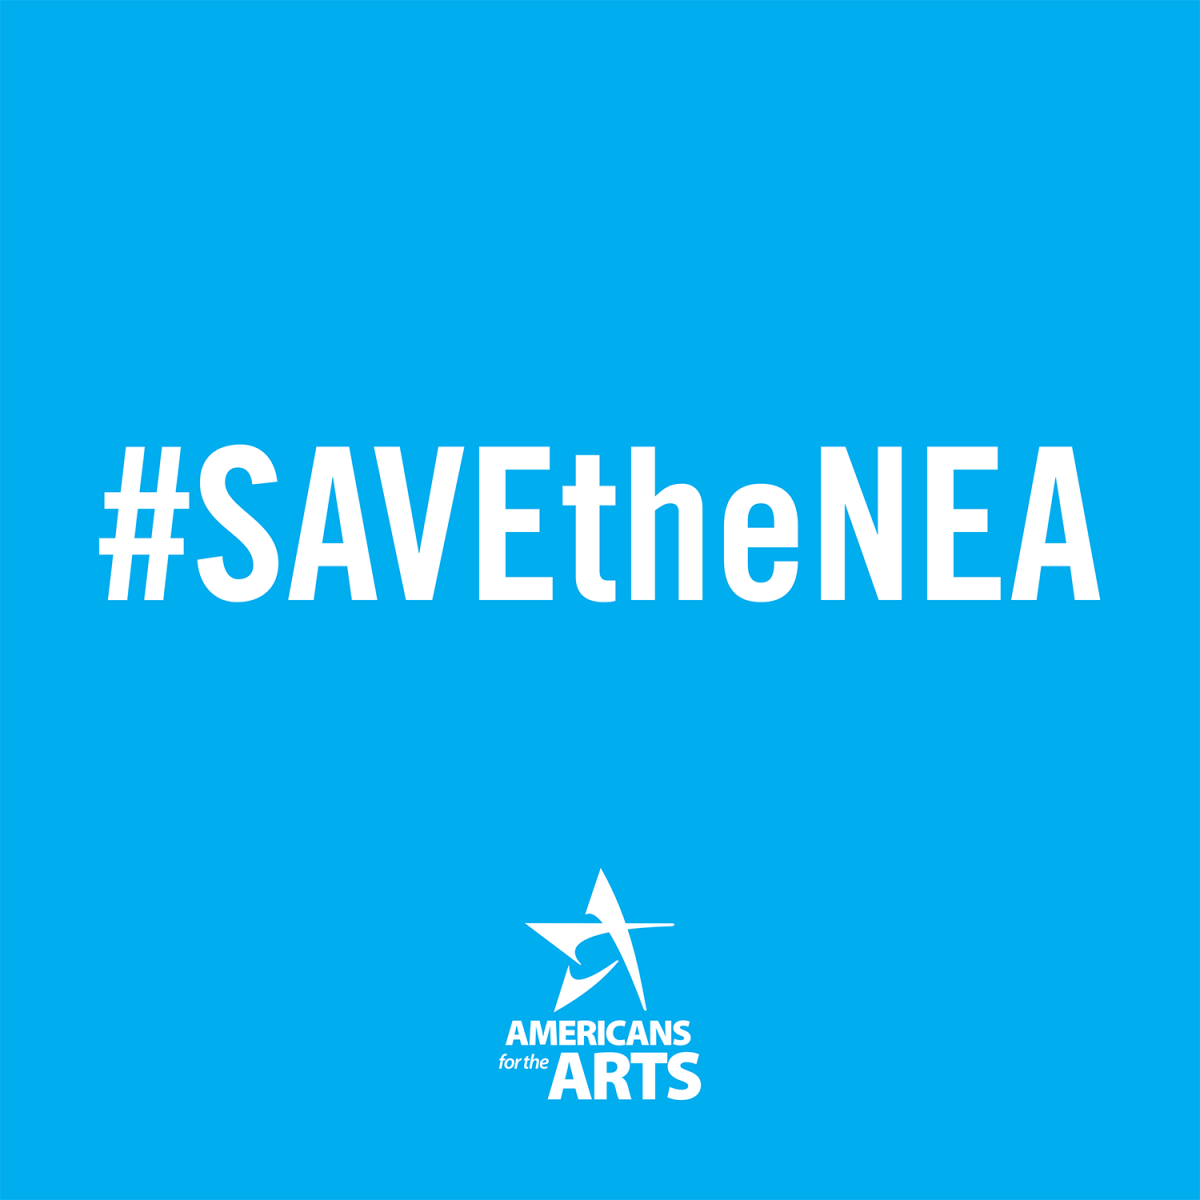 save the nea americans for the arts